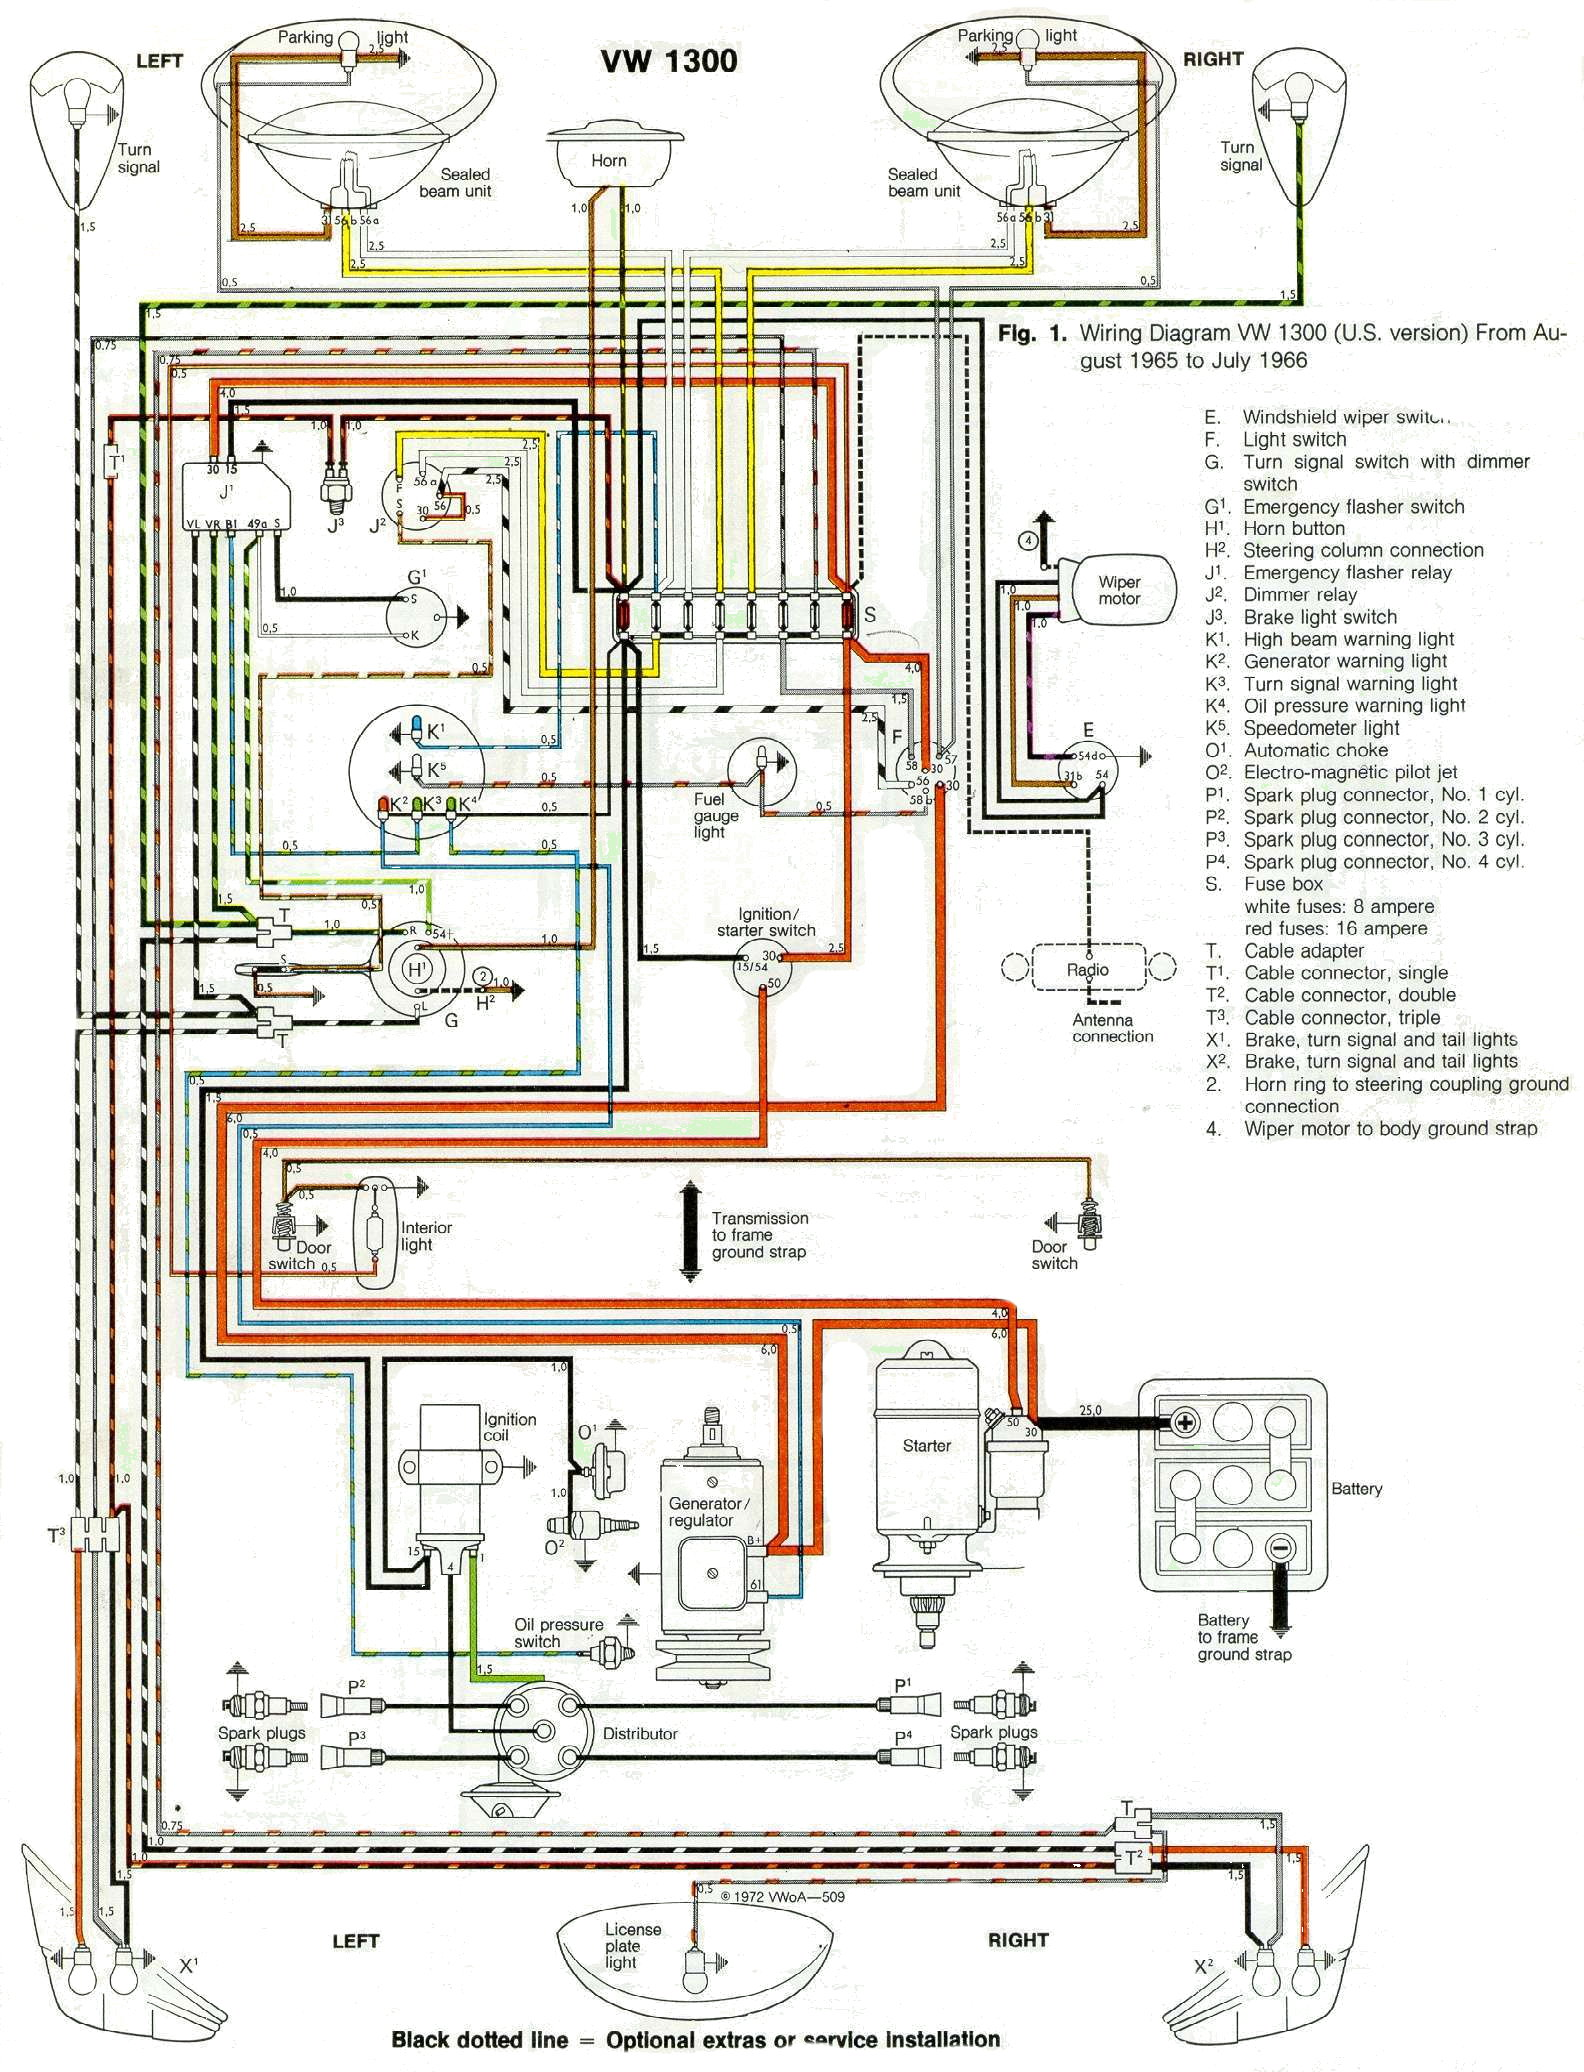 1966 Wiring vw wiring harness diagram cj7 wiring harness diagram \u2022 wiring Volkswagen Type 2 Wiring Harness at mifinder.co